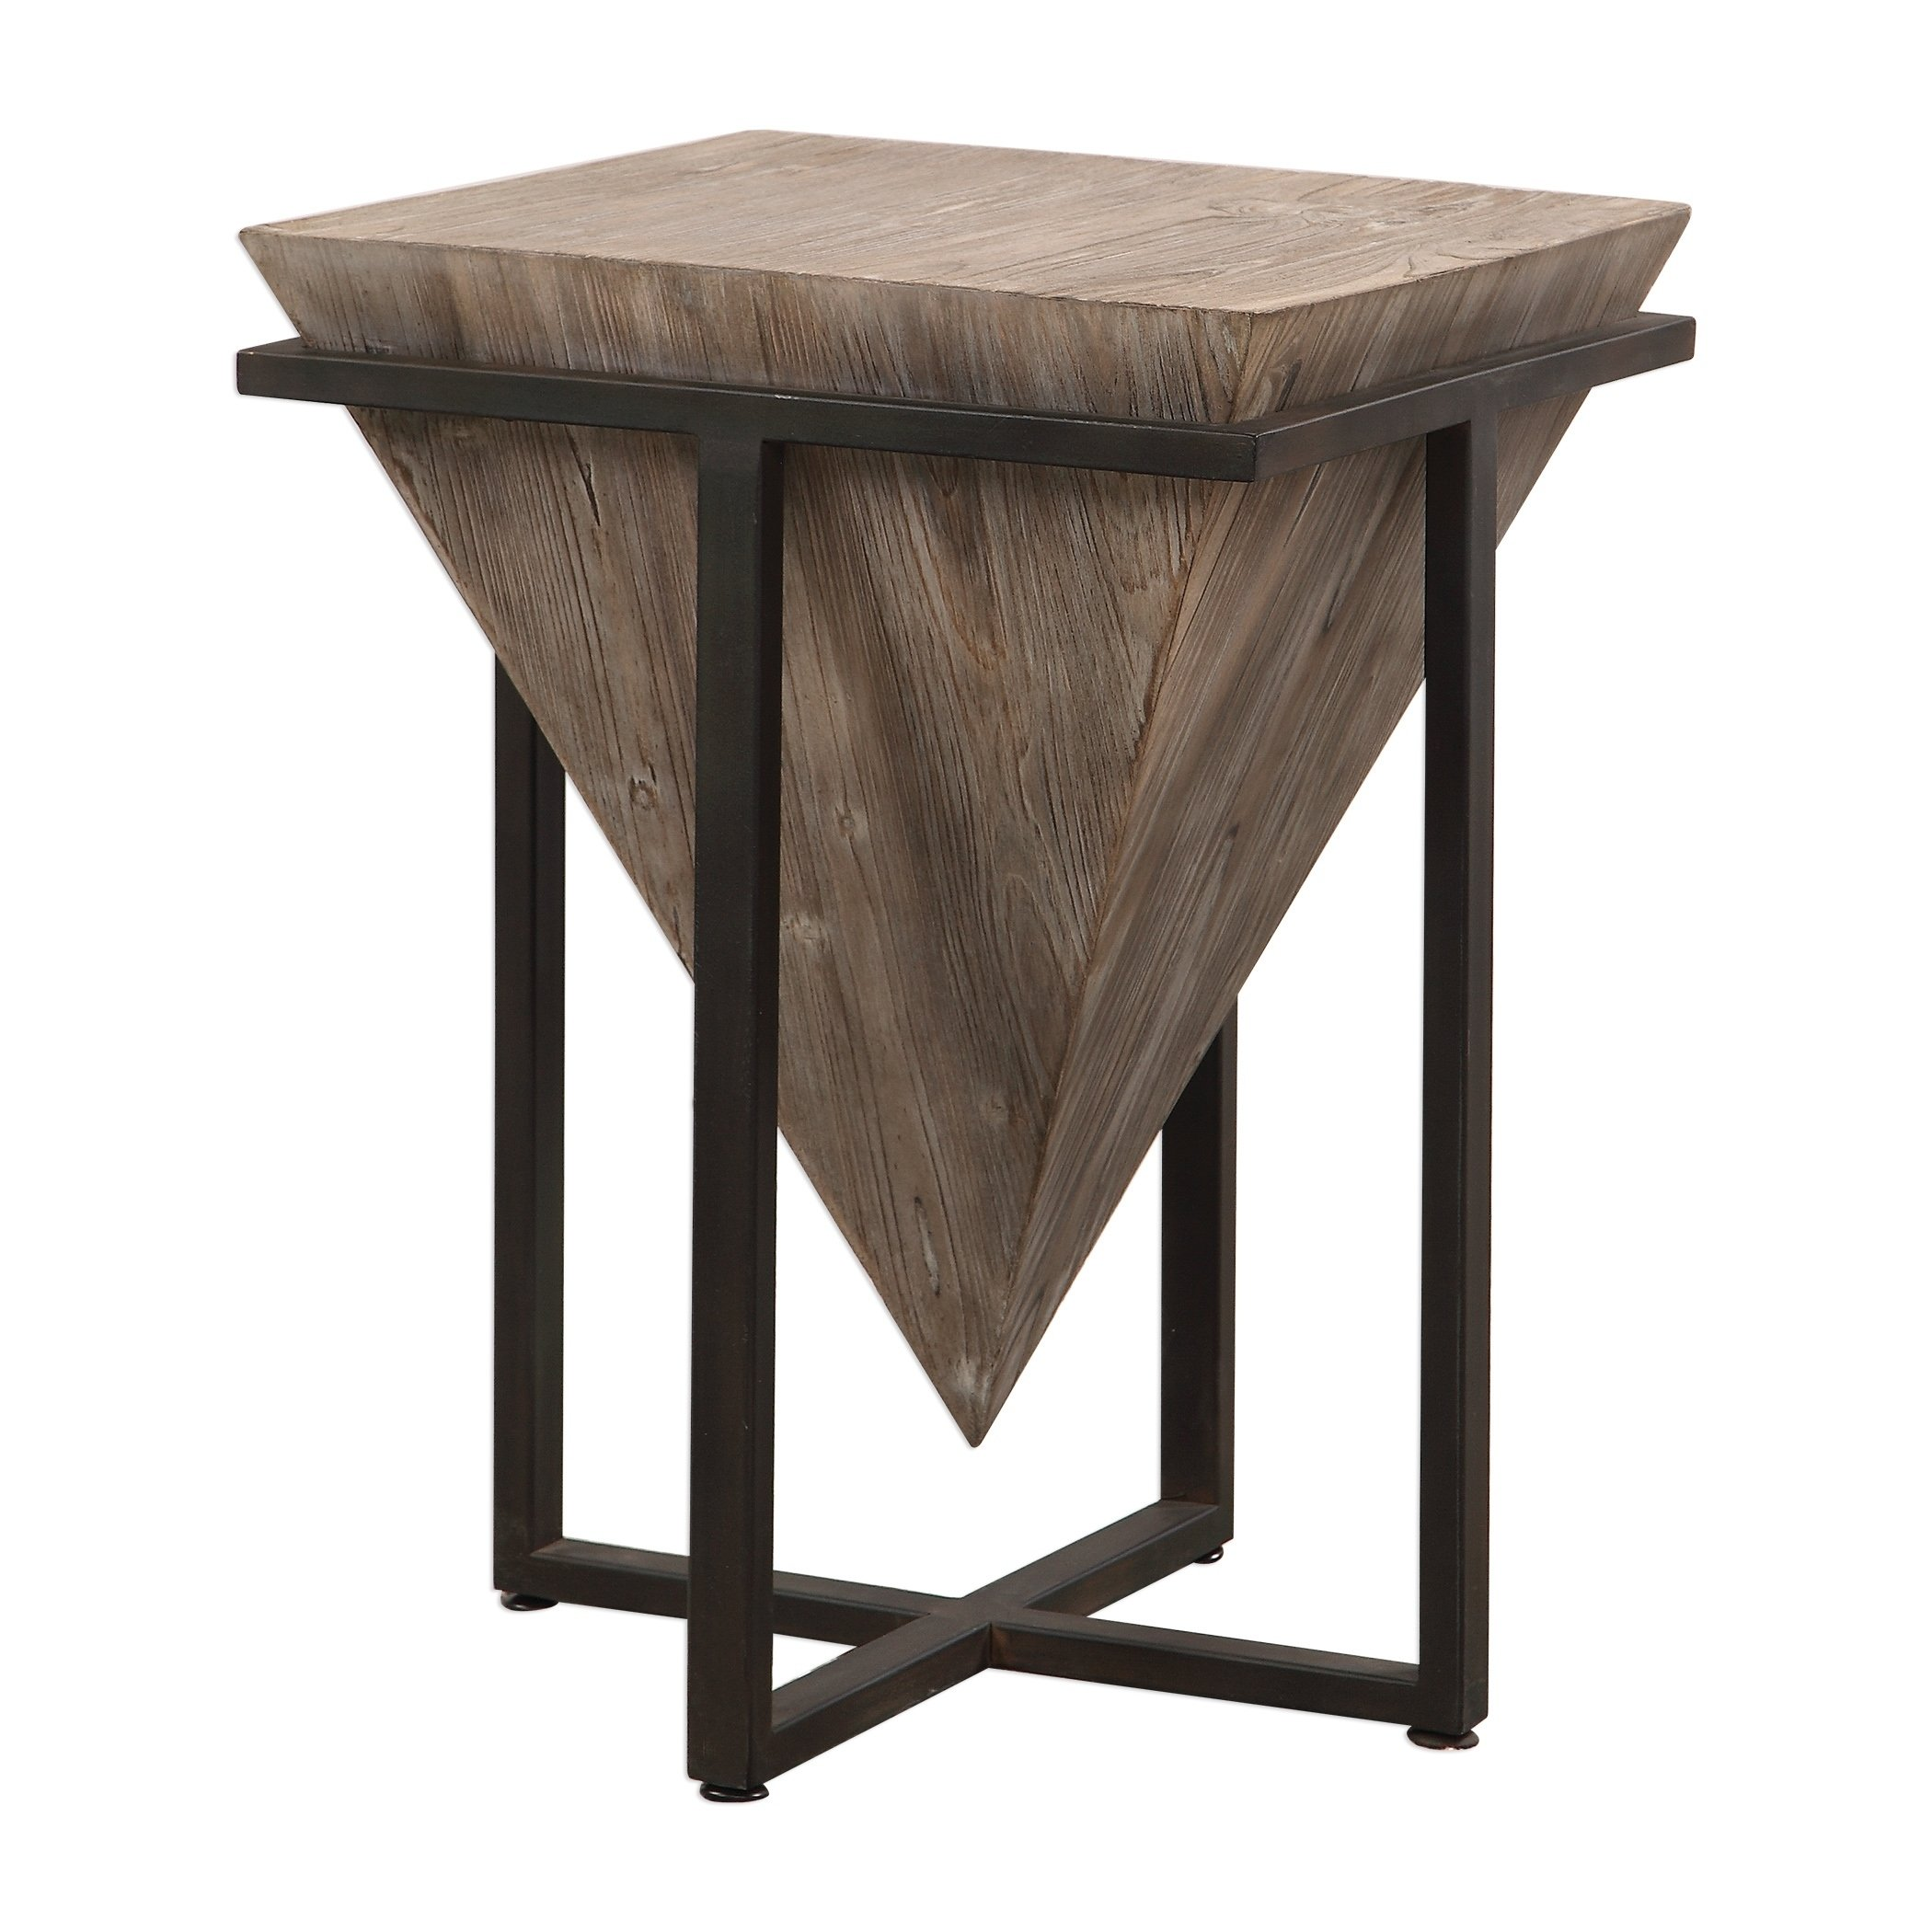 uttermost bertrand aged black and grey wash wood accent table free shipping today matching side tables console chest drawers target wall mirrors unusual wooden farmhouse living